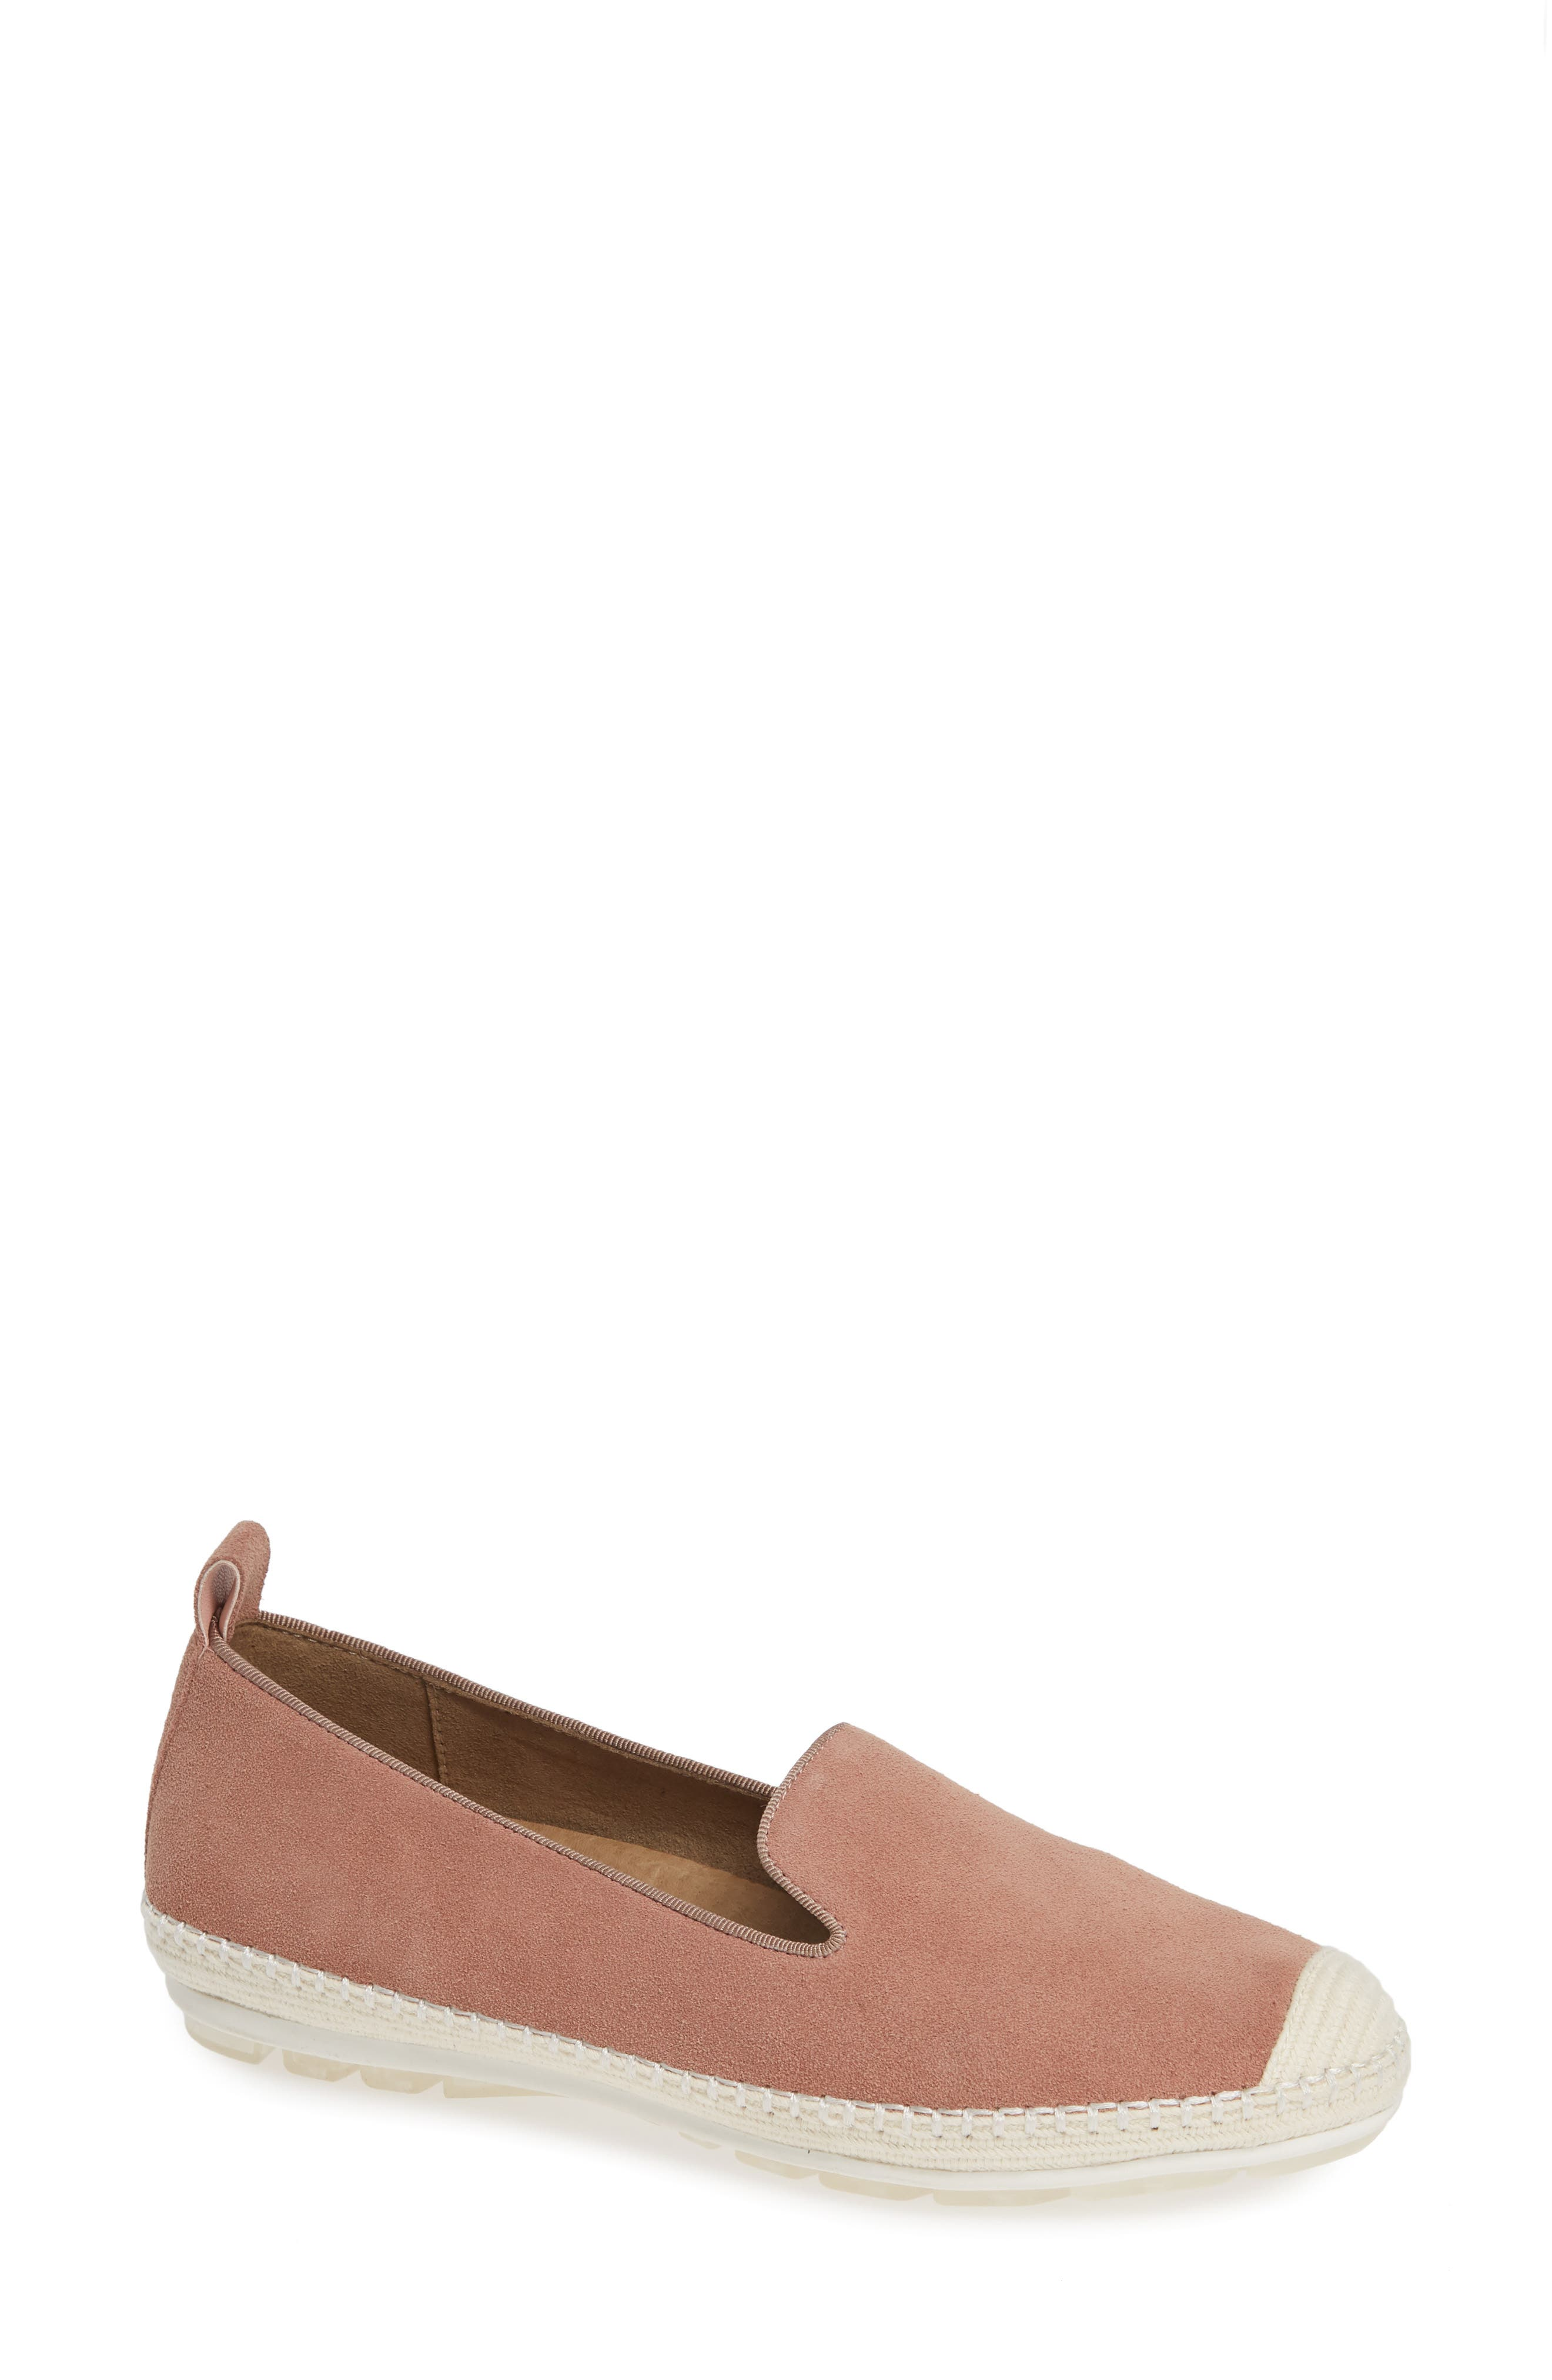 Blondo Bella Waterproof Espadrille Flat (Women)